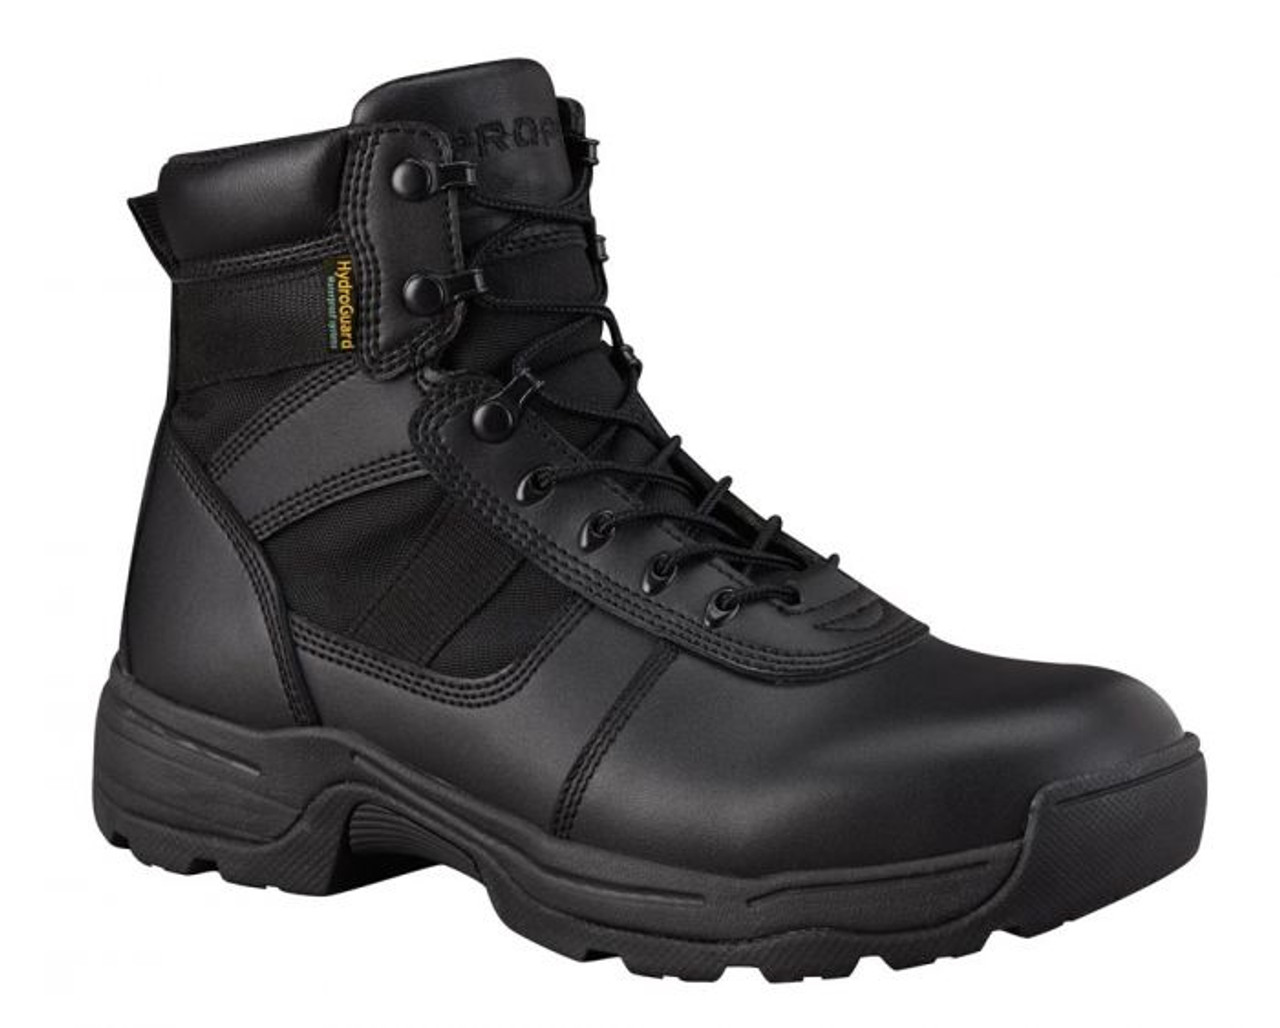 Right outside view of the Series 100 Waterproof 6in Boot by Propper